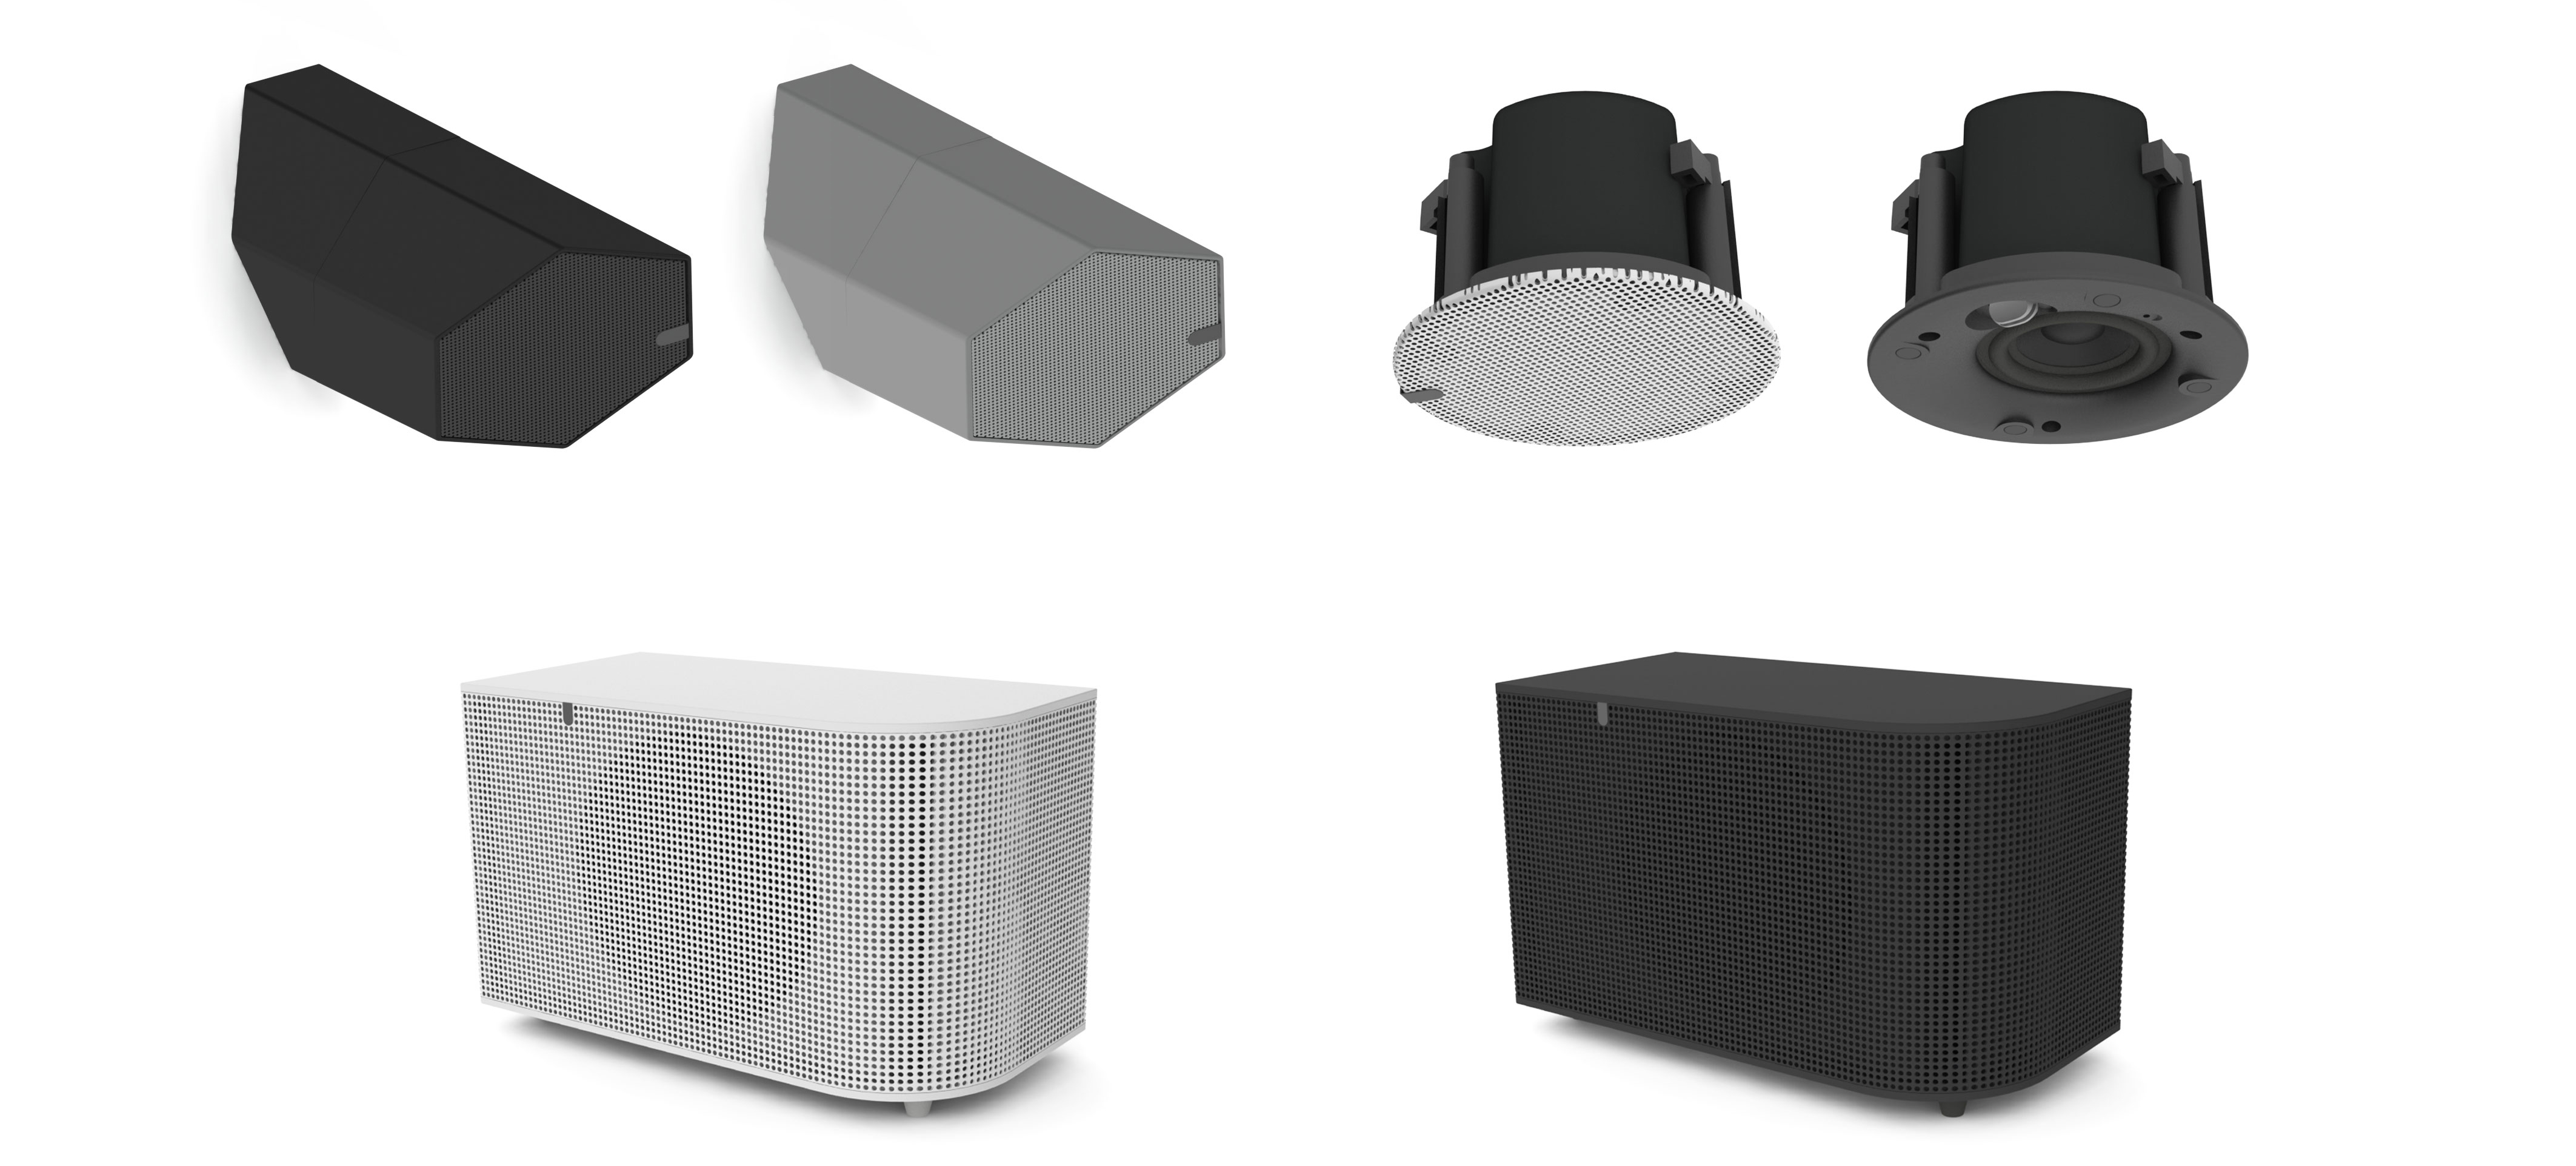 New Contractor Speaker Models at ISE 2016